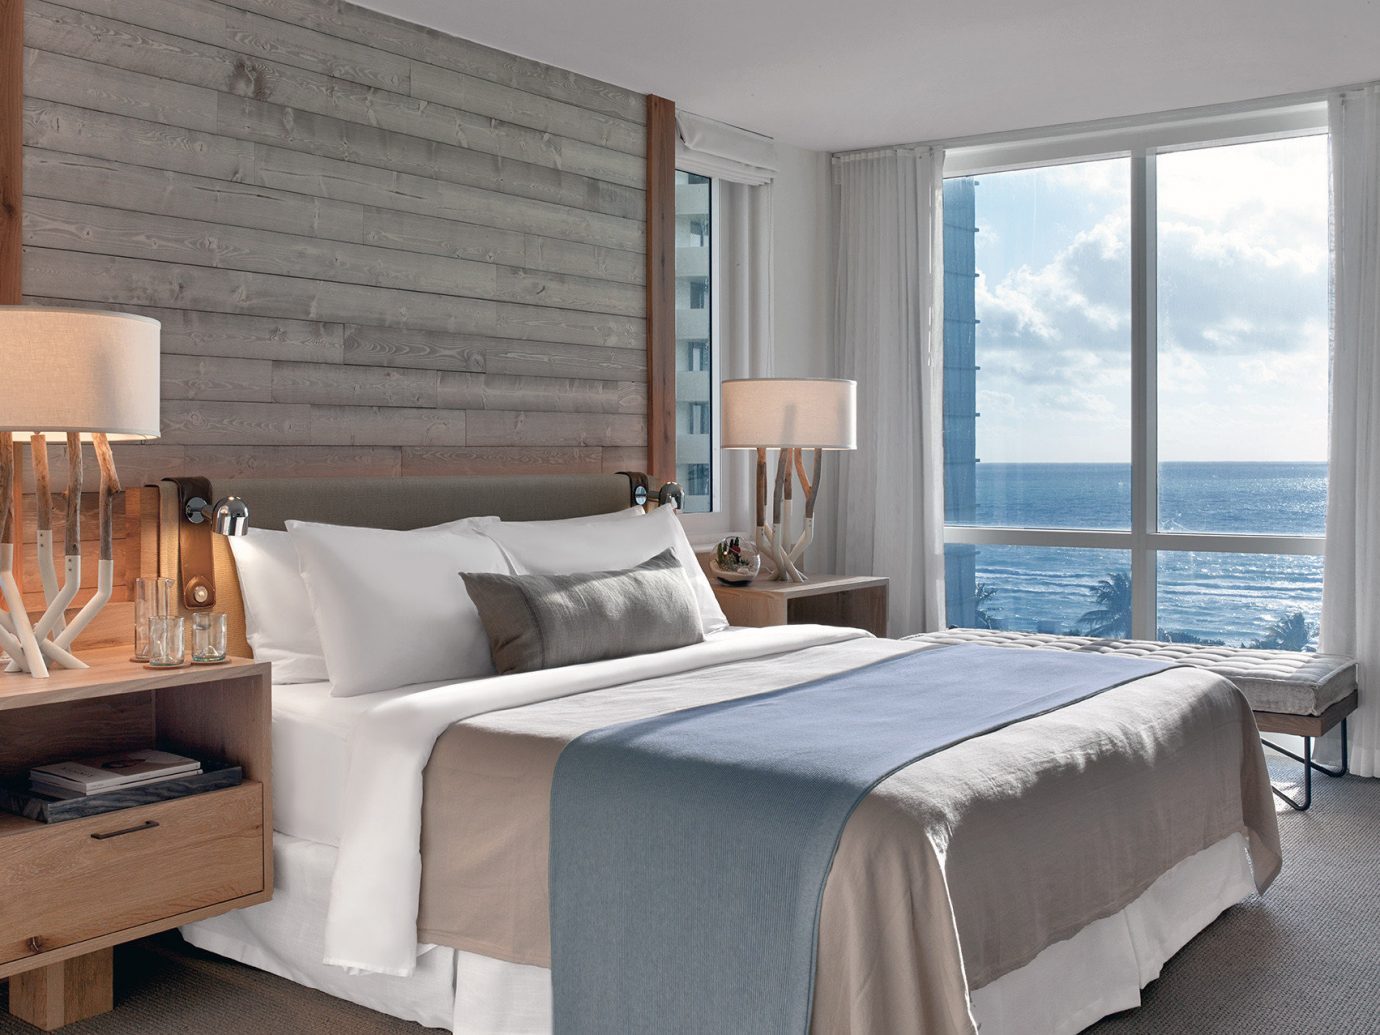 Balcony Beachfront Bedroom City Health + Wellness Hotels Luxury Miami Miami Beach Romance Romantic Suite Trip Ideas Yoga Retreats window indoor sofa bed room floor wall property hotel furniture ceiling interior design home living room cottage real estate bed frame estate bed sheet apartment decorated